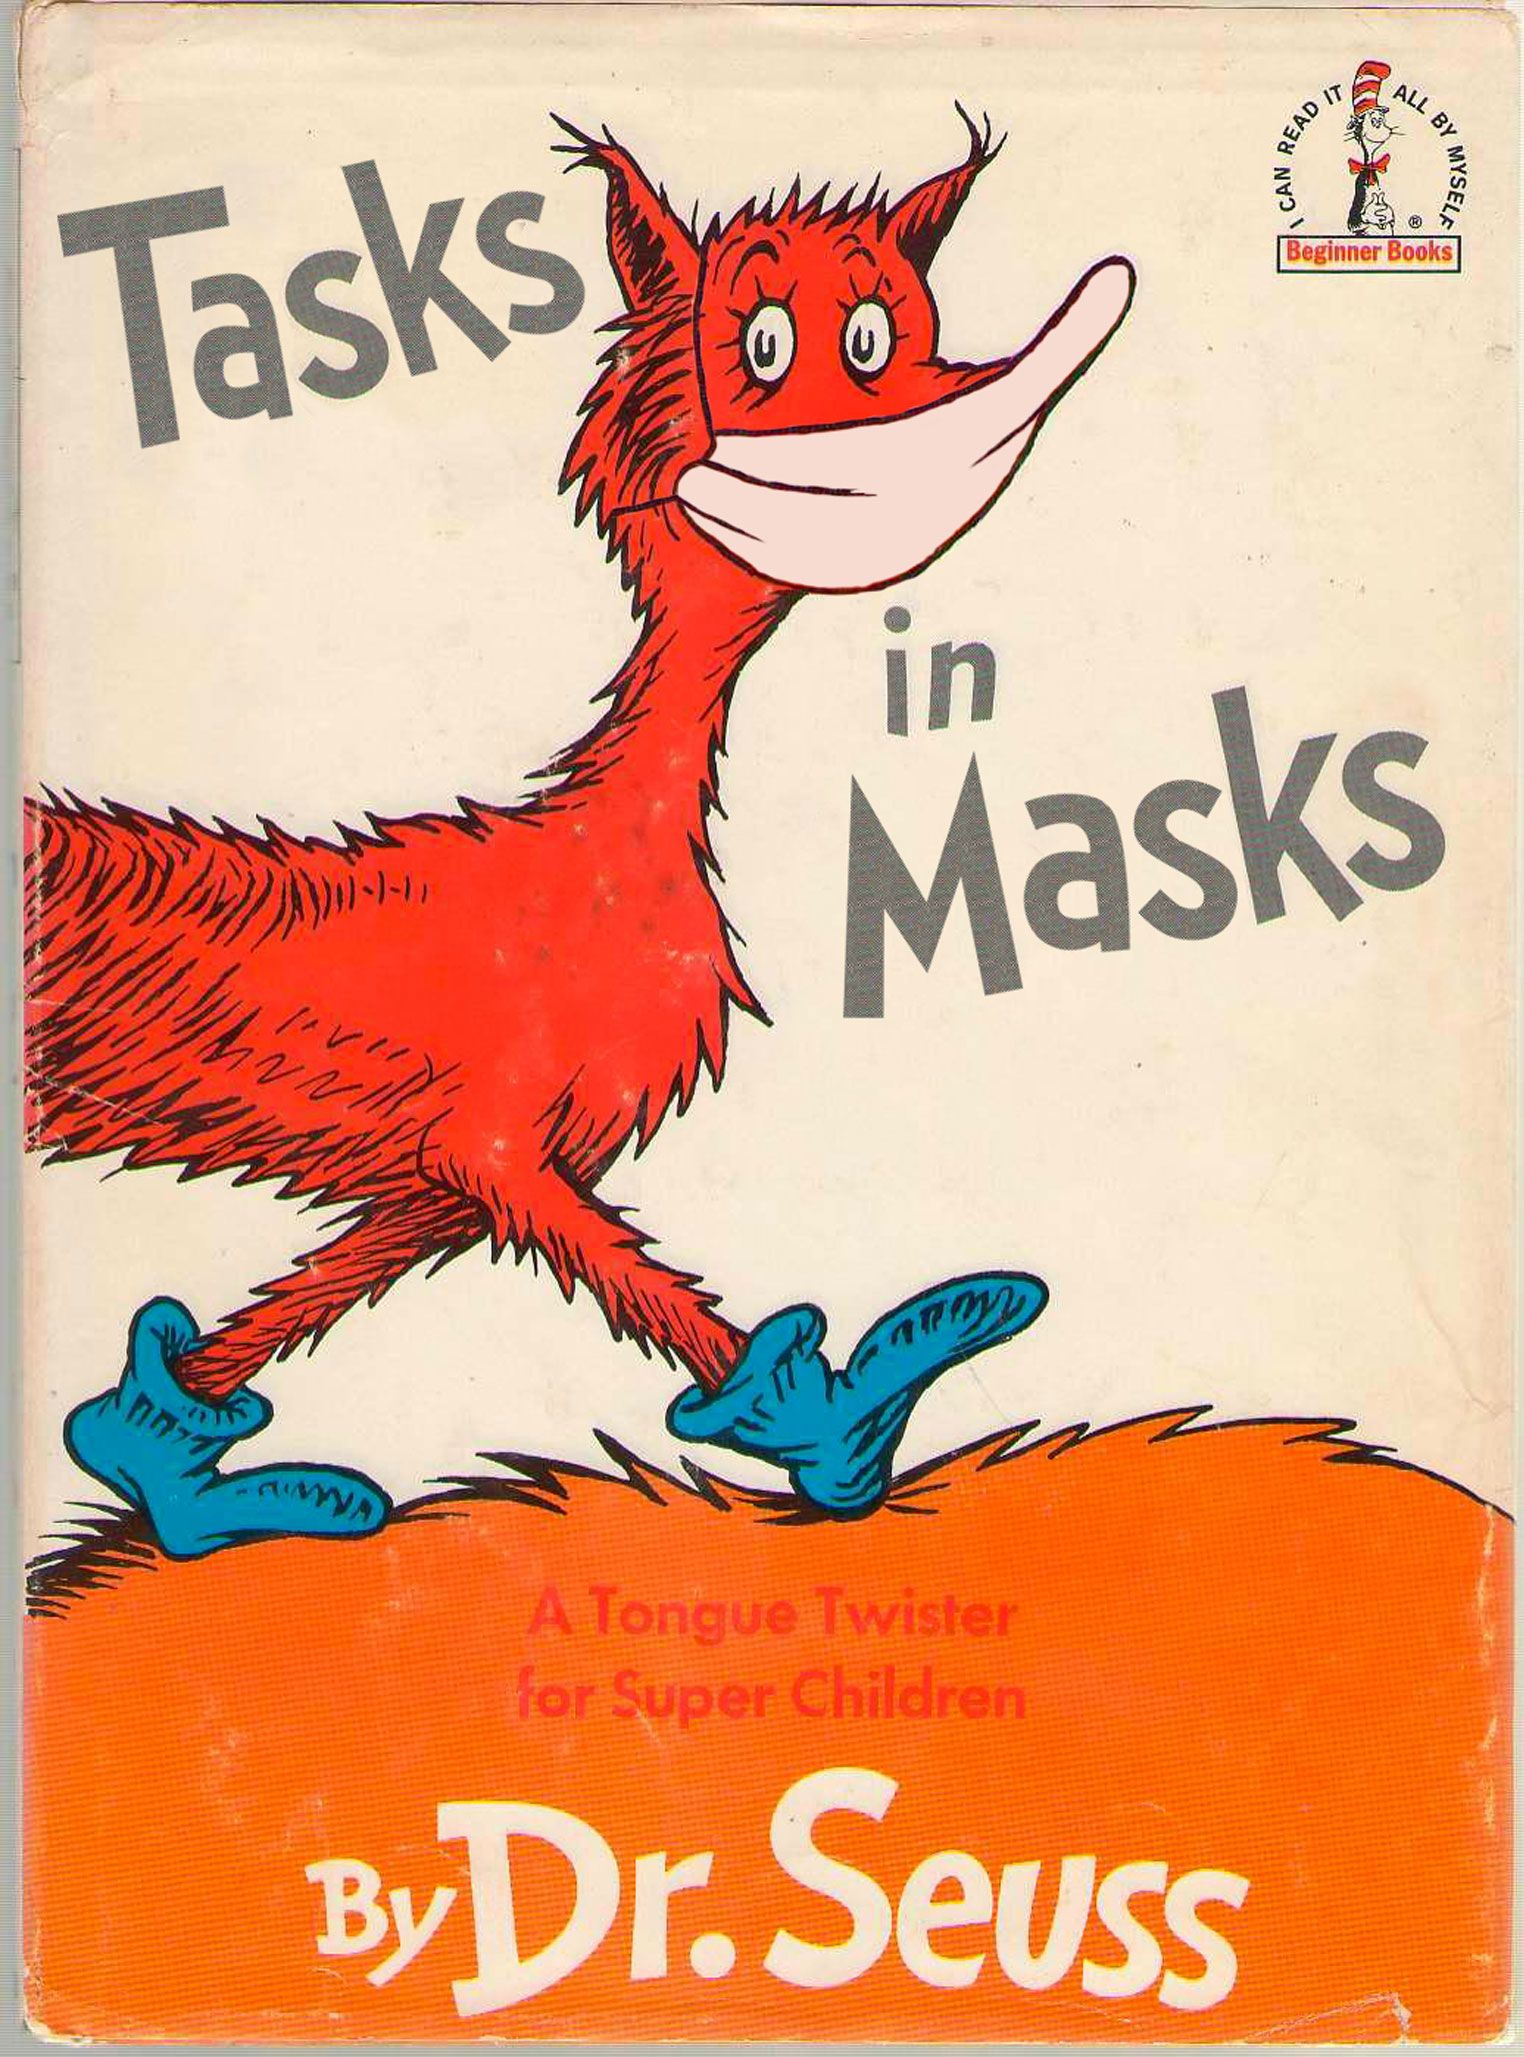 Tasks in Masks (Fox in Socks, by Dr. Seuss)